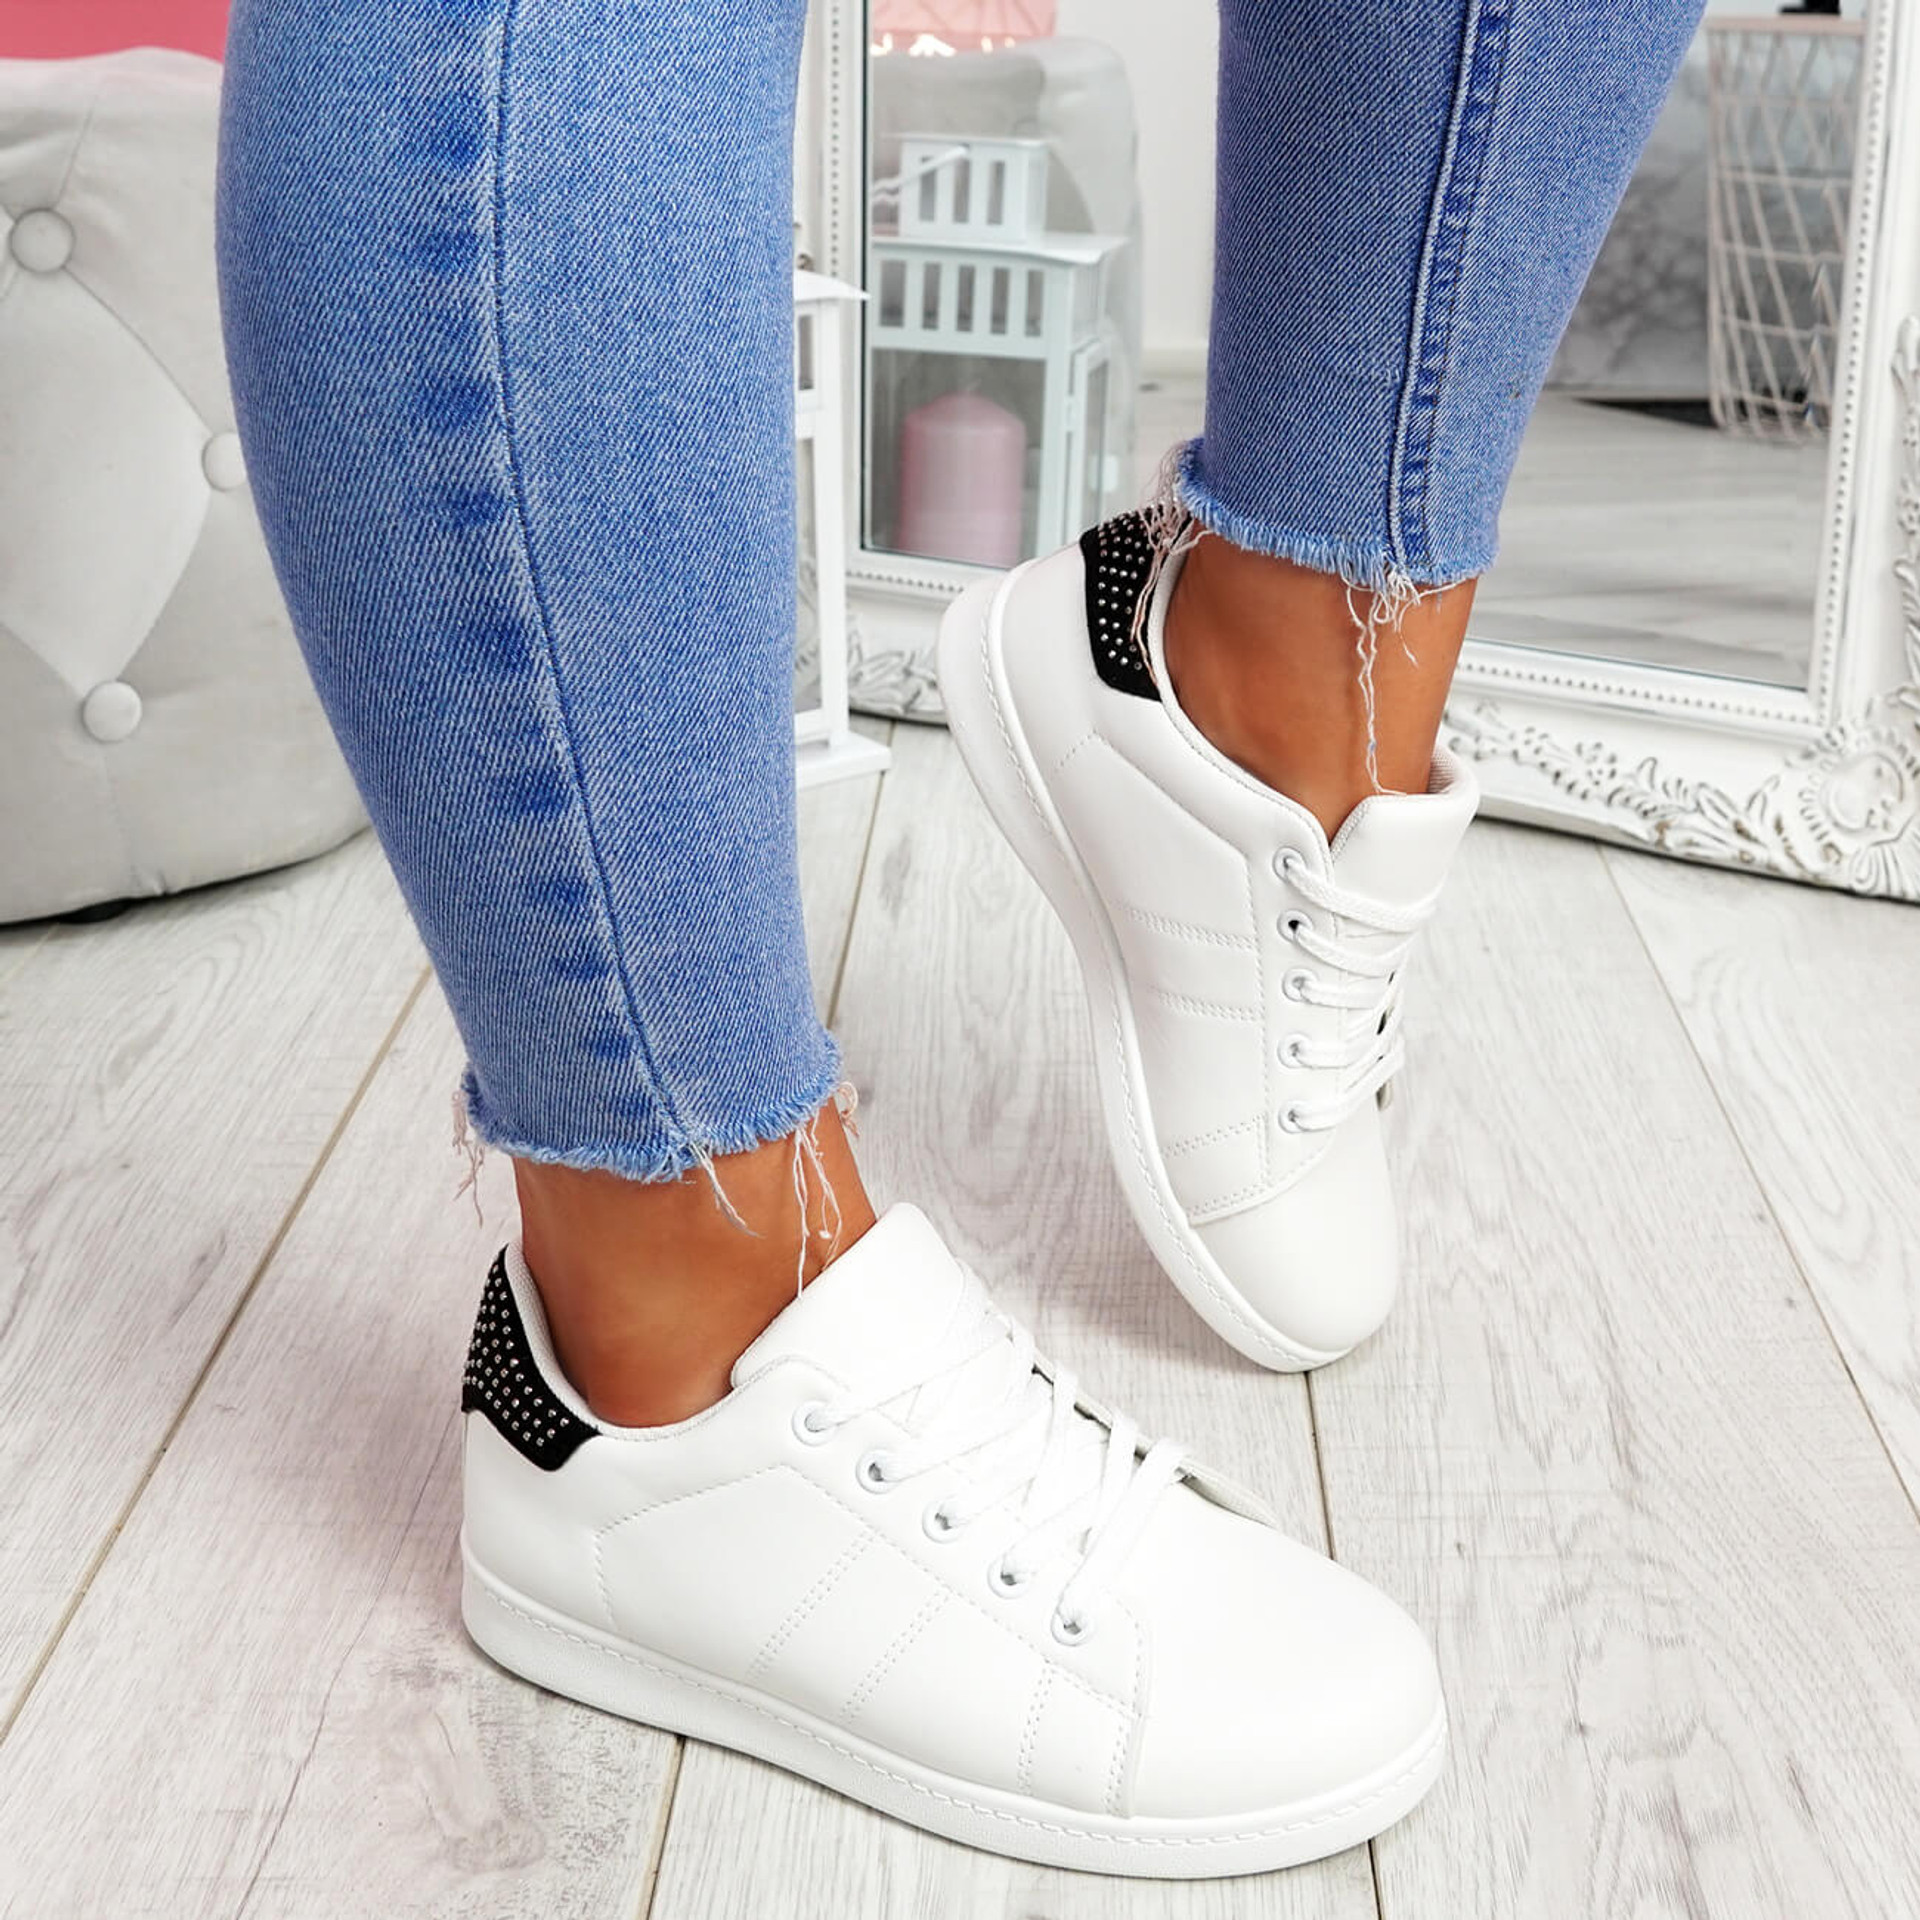 Zowe White Black Studded Trainers